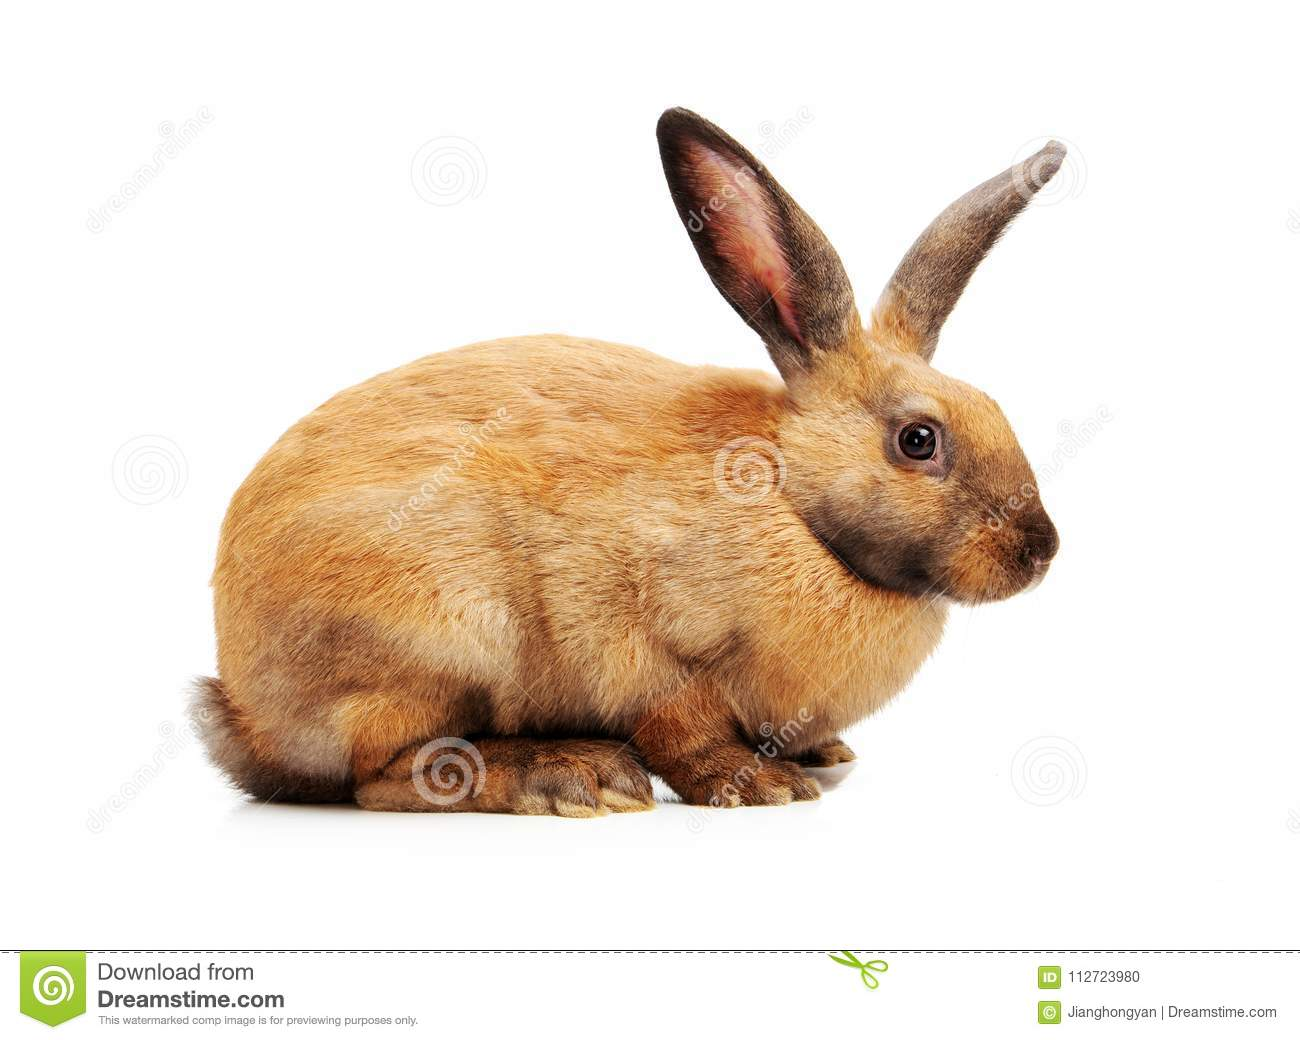 Rabbit sitting in front